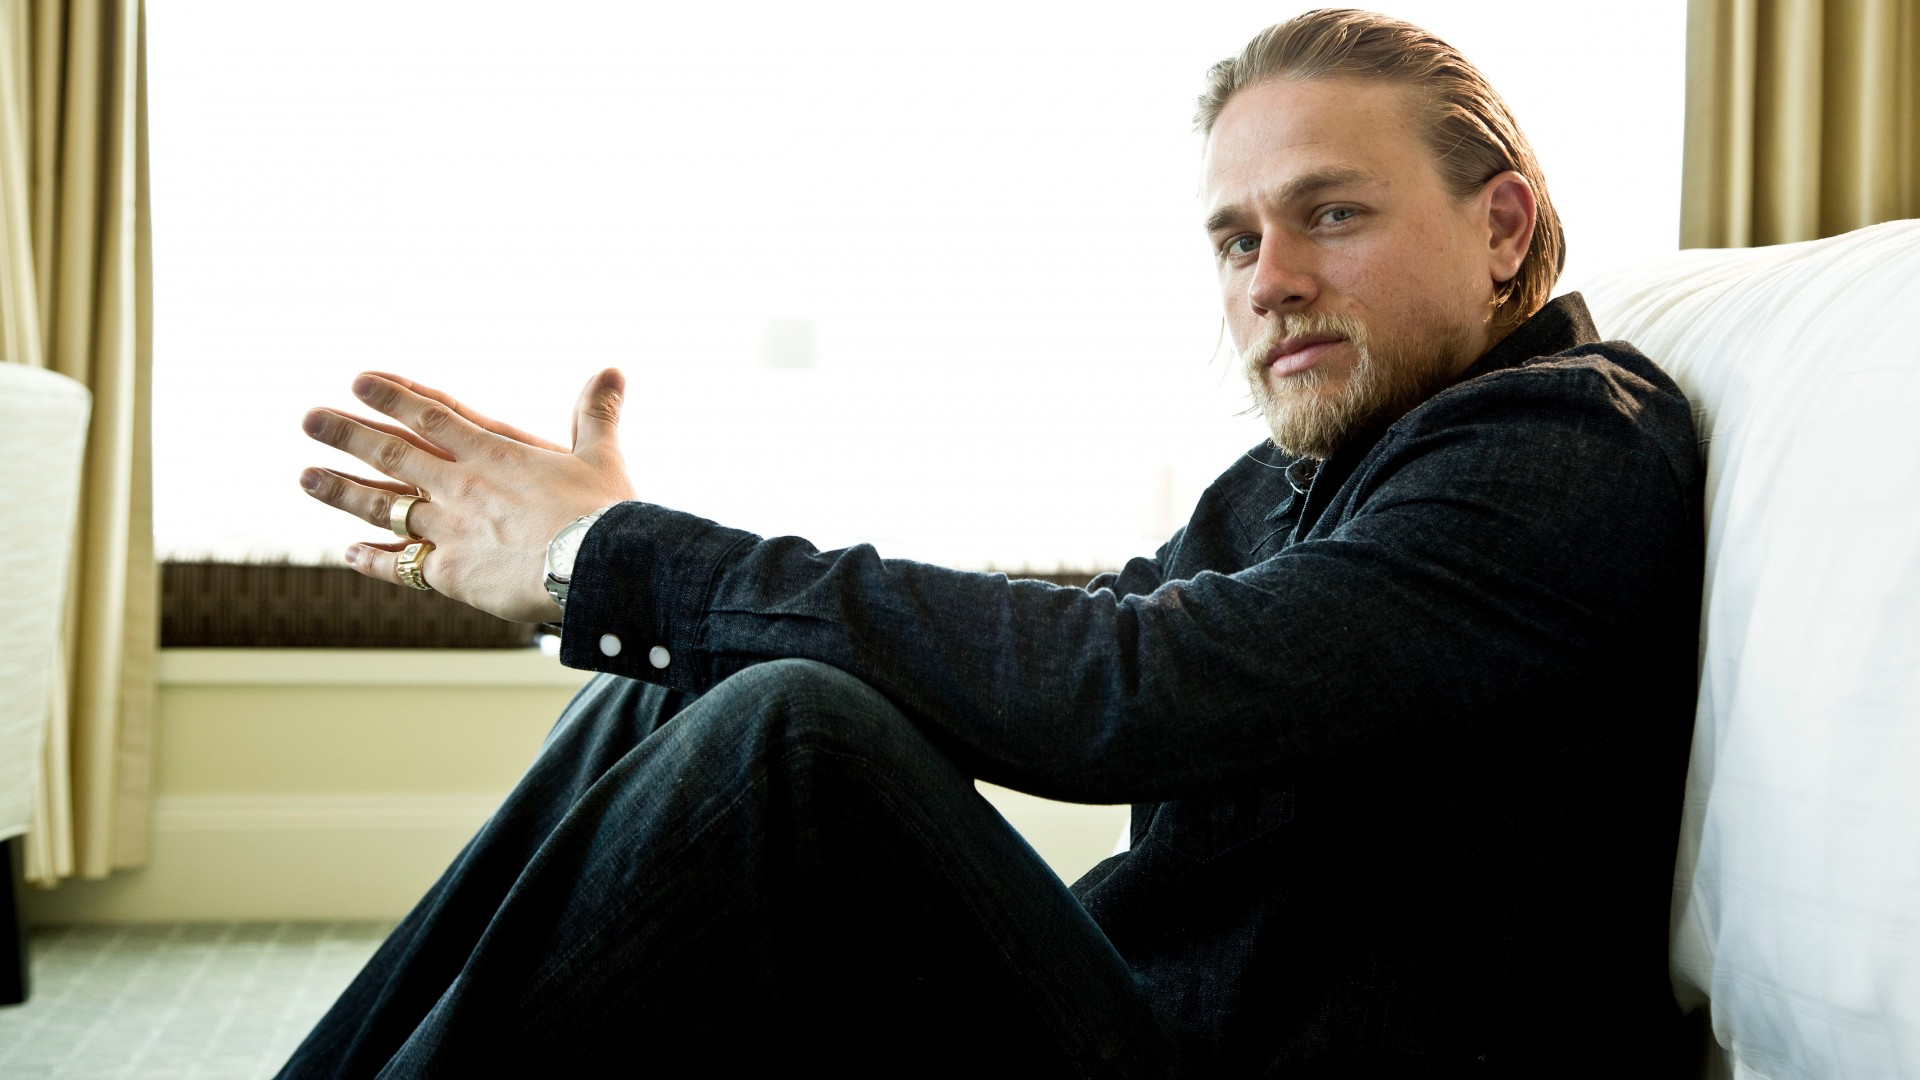 Hd Charlie Hunnam Wallpapers: Wallpaper Charlie Hunnam, Most Popular Celebs In 2015